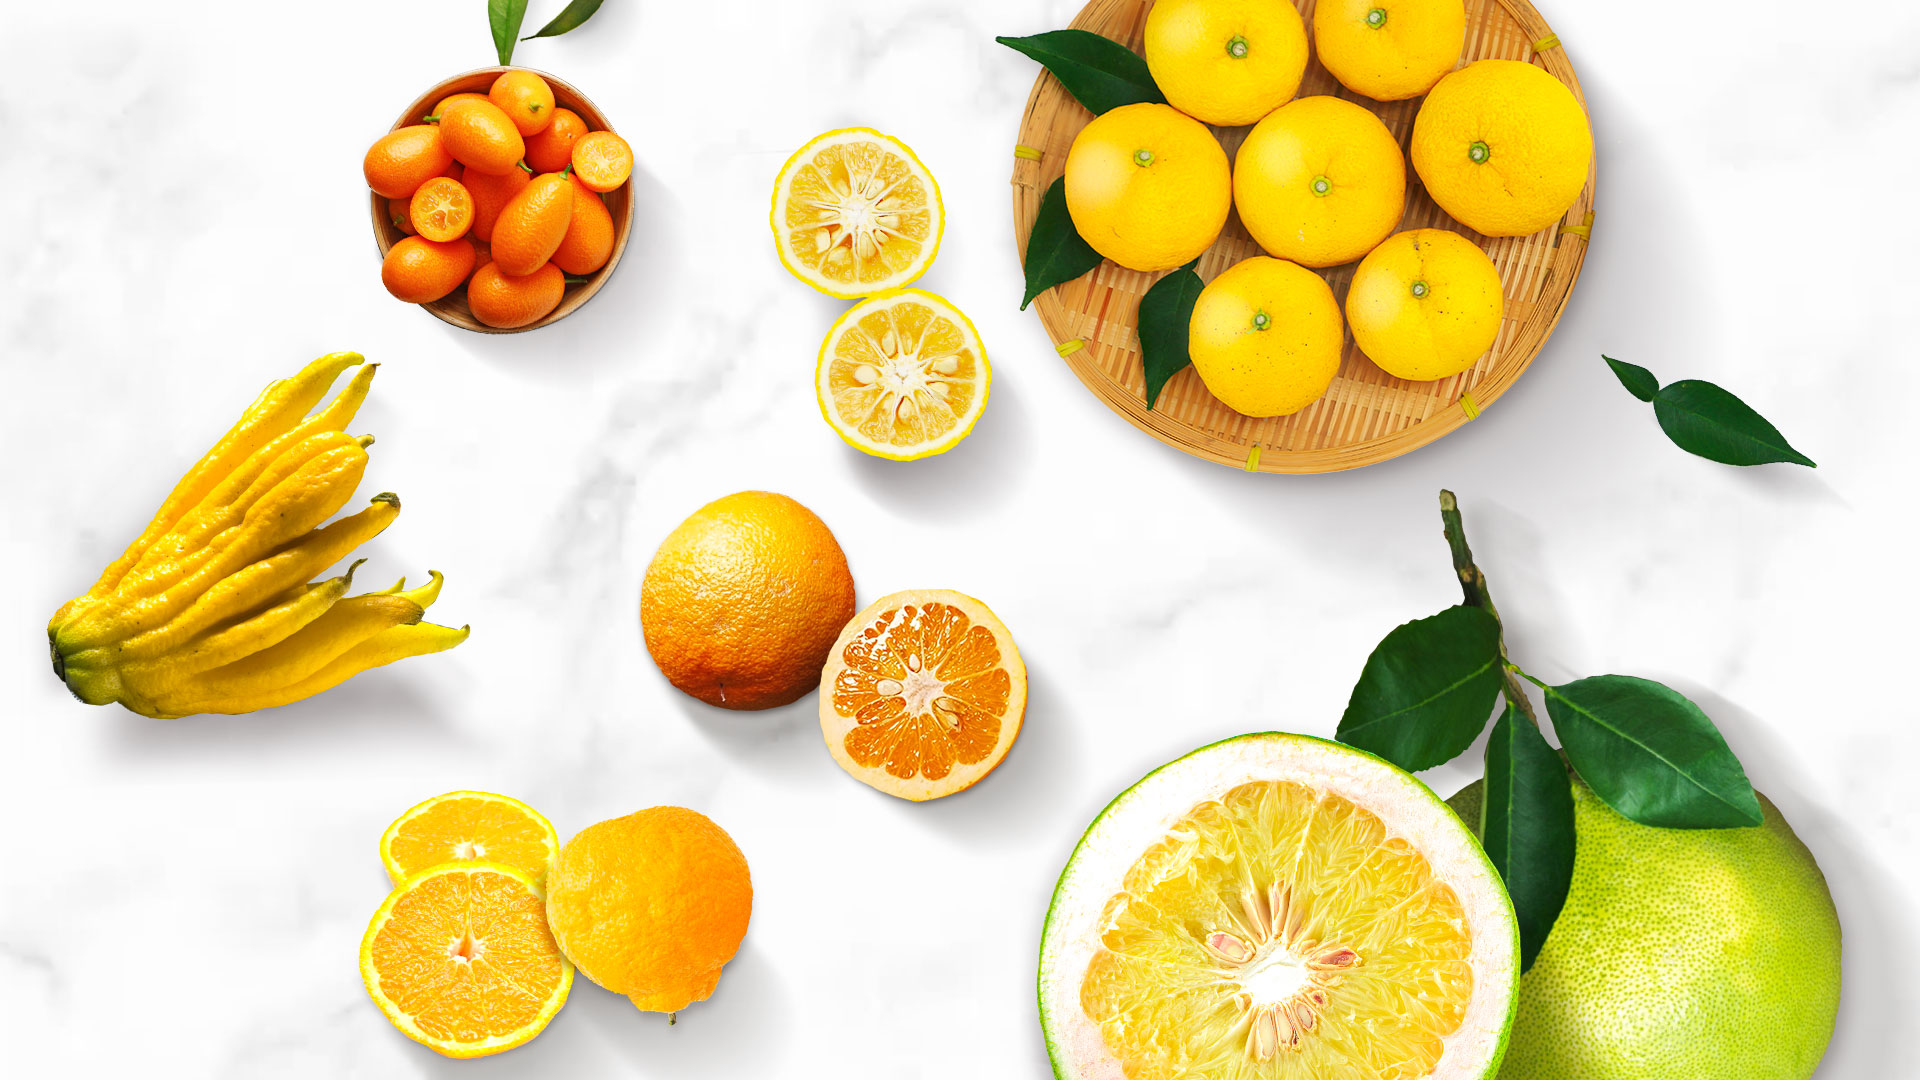 6 Exotic Citrus Fruits That Are Just Sublime